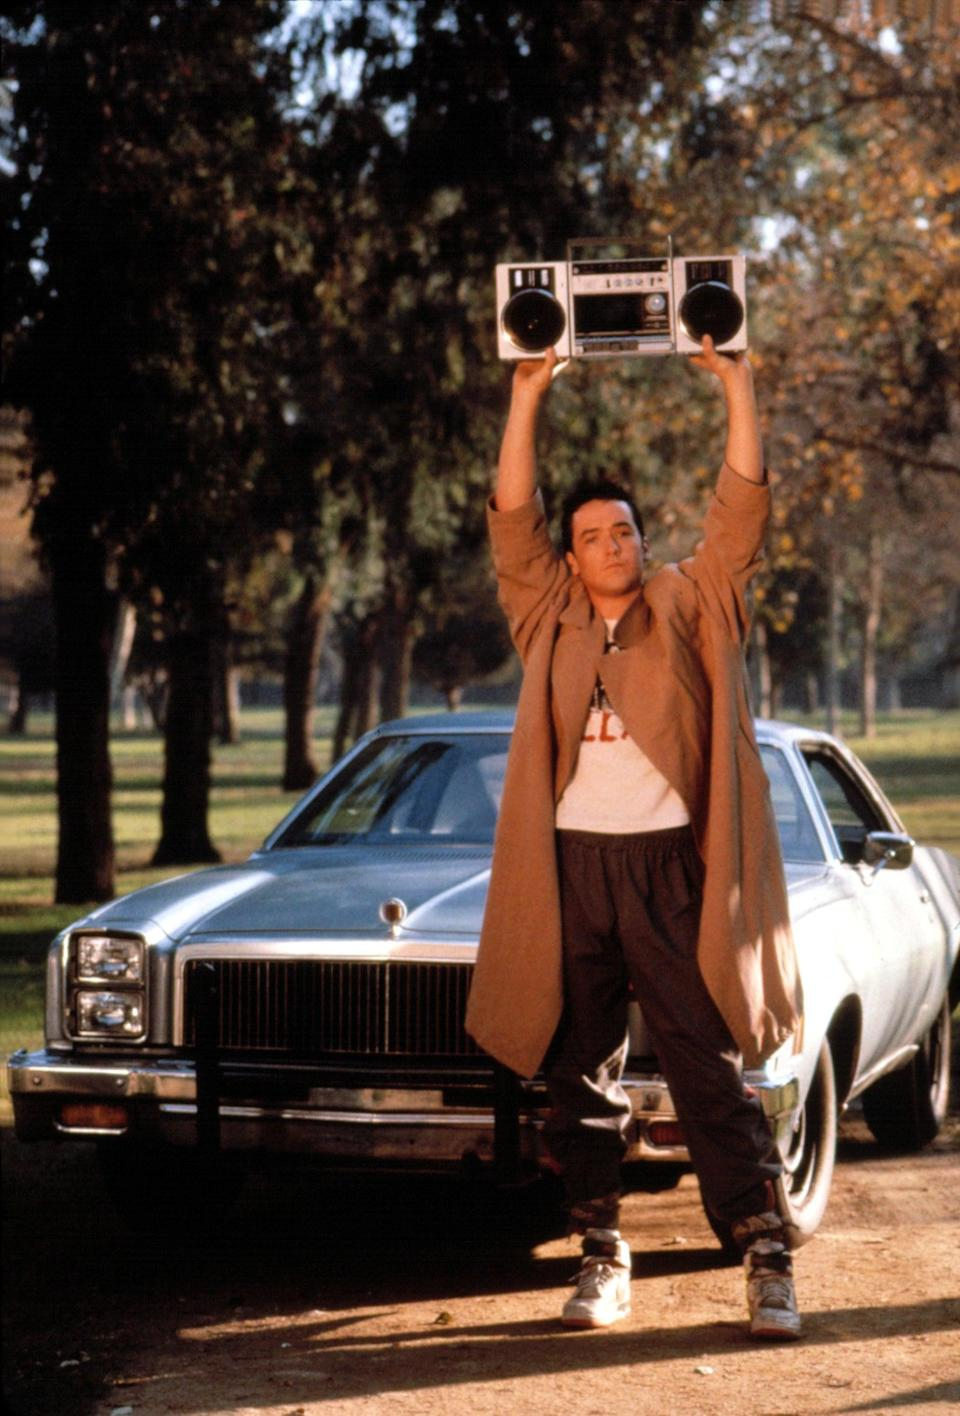 <ul> <li><strong>What to wear:</strong> A trench coat, sneakers, baggy pants, and a boom box (or a makeshift boom box).</li> </ul>